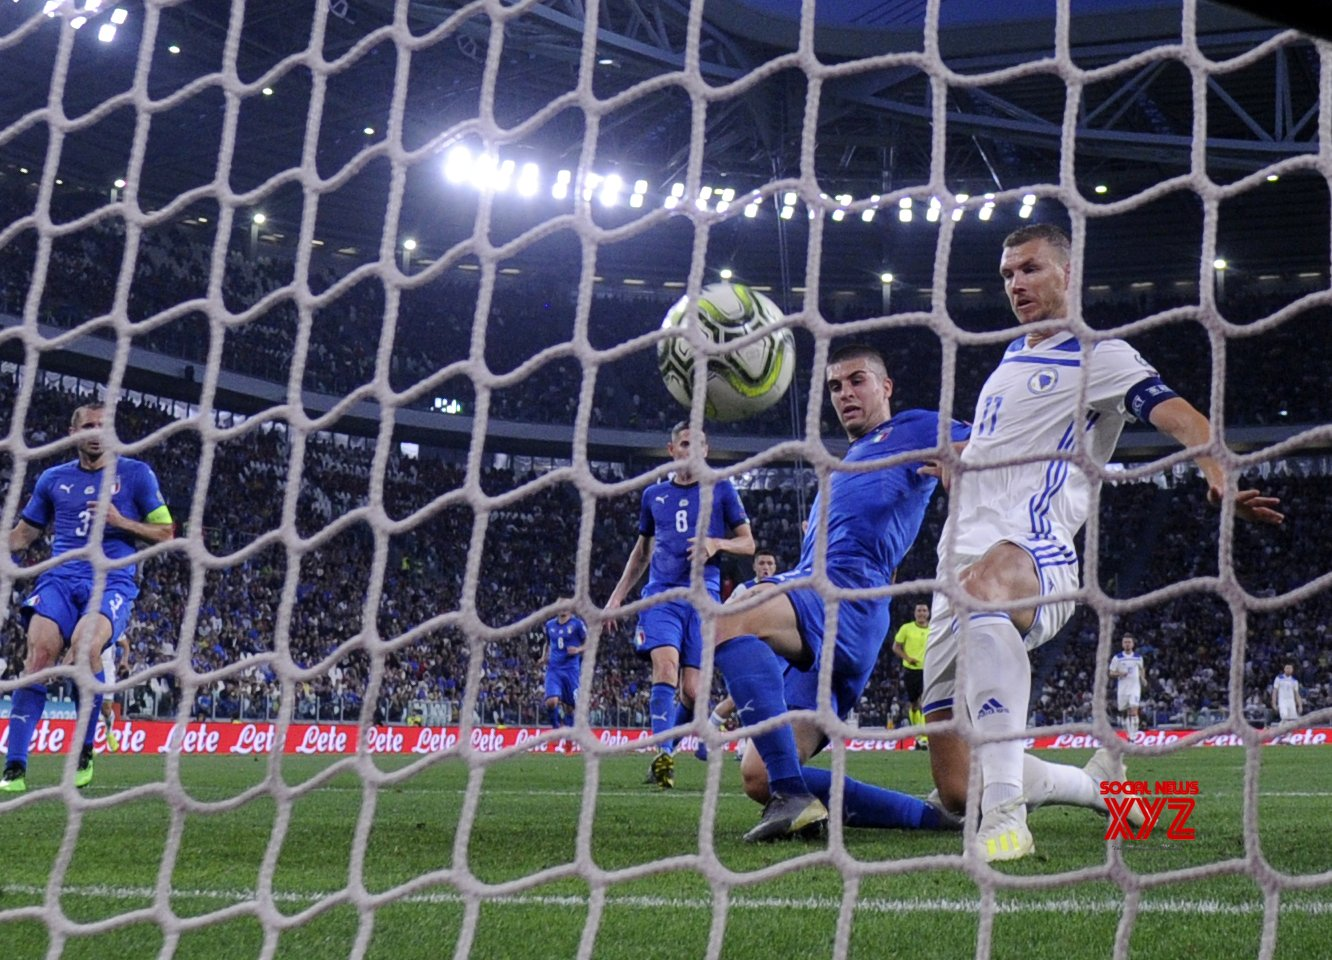 ITALY - TURIN - FOOTBALL - UEFA EURO 2020 GROUP J QUALIFIER #Gallery